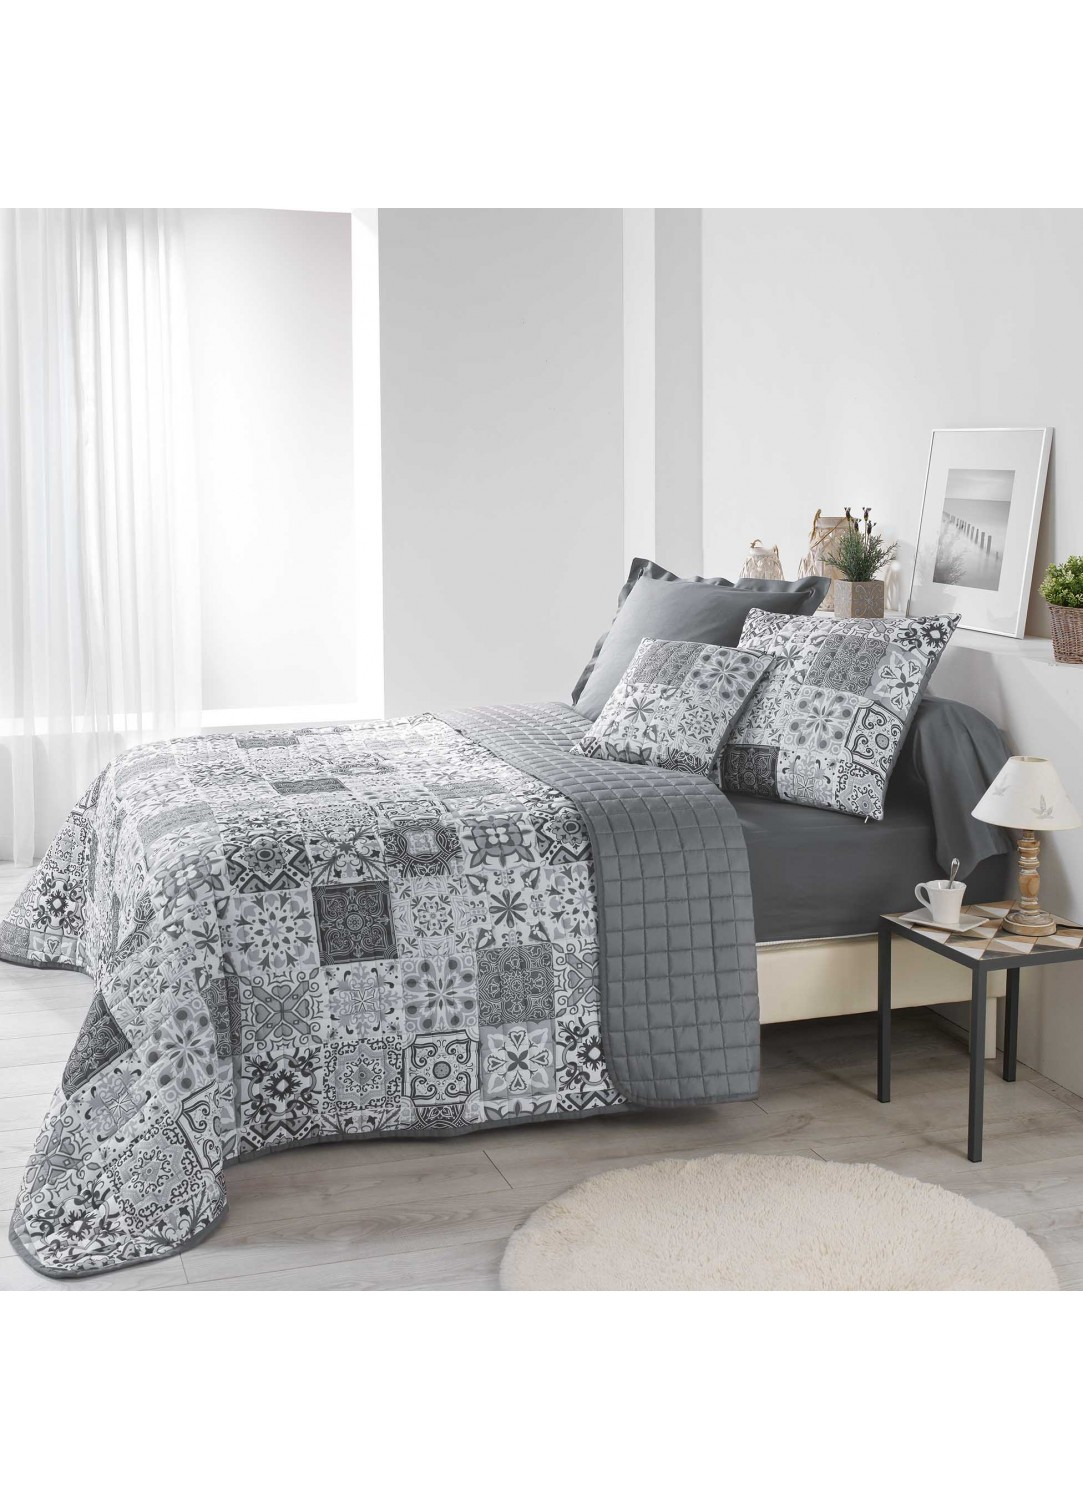 couvre lit imprim azulejos gris homemaison vente en ligne couverture boutis. Black Bedroom Furniture Sets. Home Design Ideas